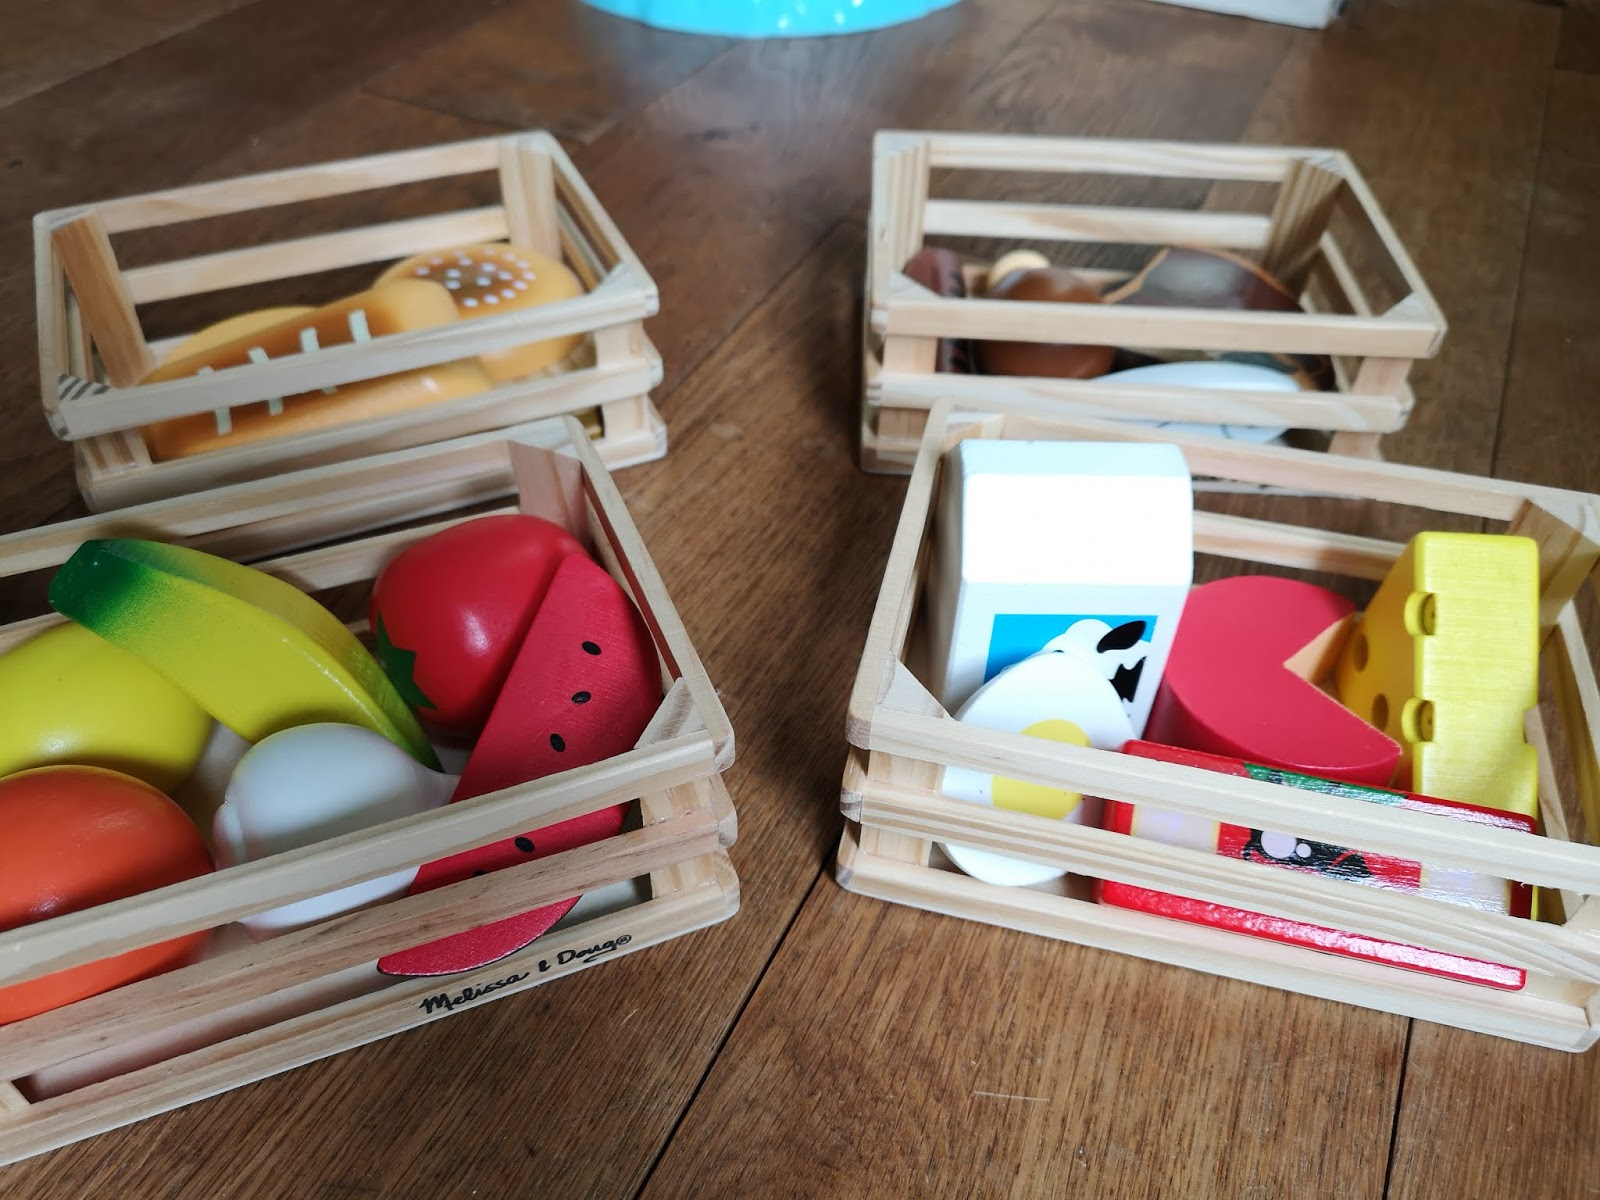 Melissa & Doug Wooden Food Crates